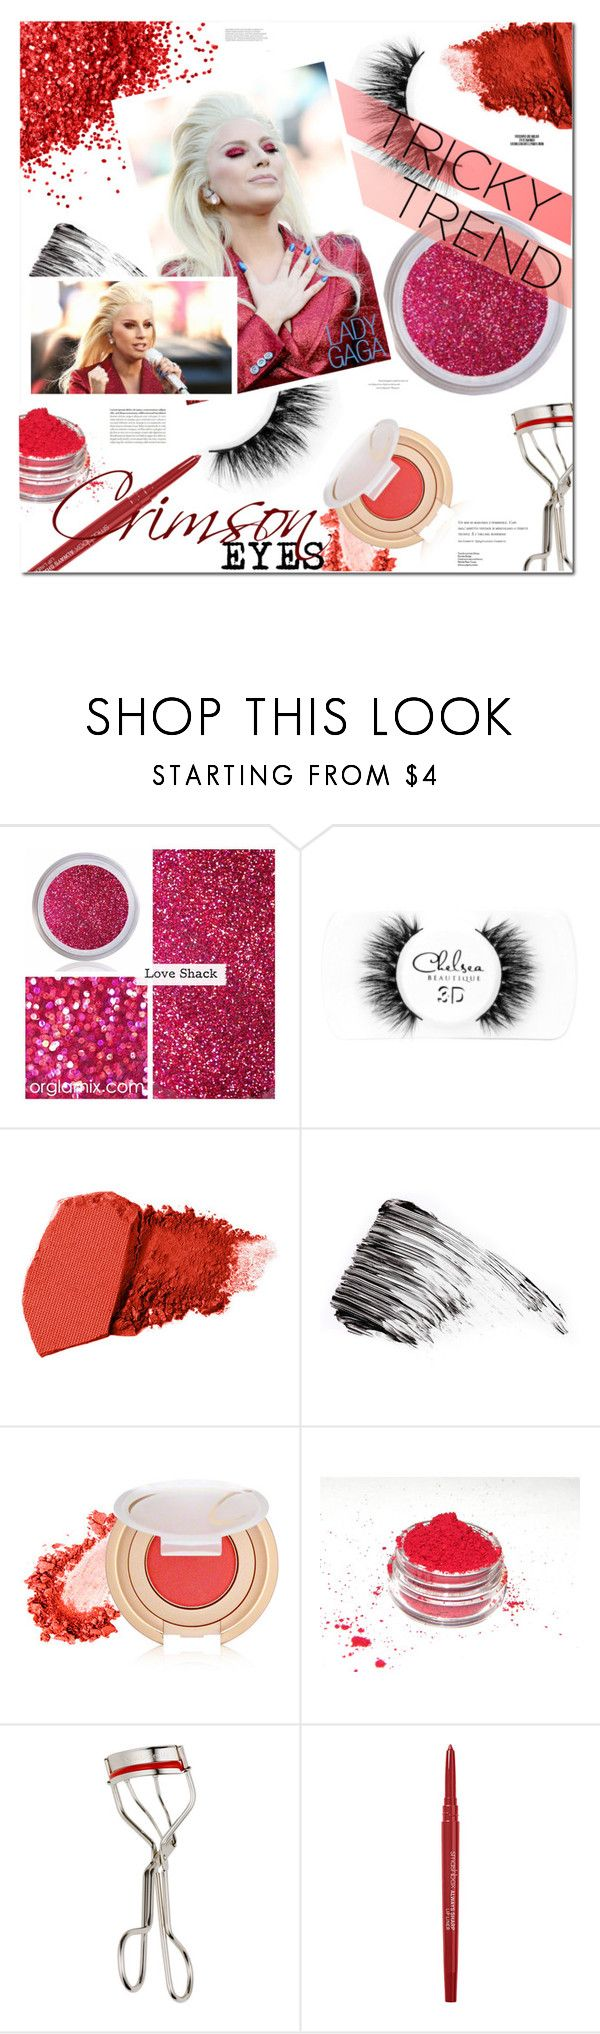 """TRICKY TREND: CRIMSON EYES"" by stacey-lynne ❤ liked on Polyvore featuring beauty, Chelsea Beautique, Jane Iredale, Ellis Faas, Kevyn Aucoin, Tiffany & Co., Smashbox, Rika and Balenciaga"